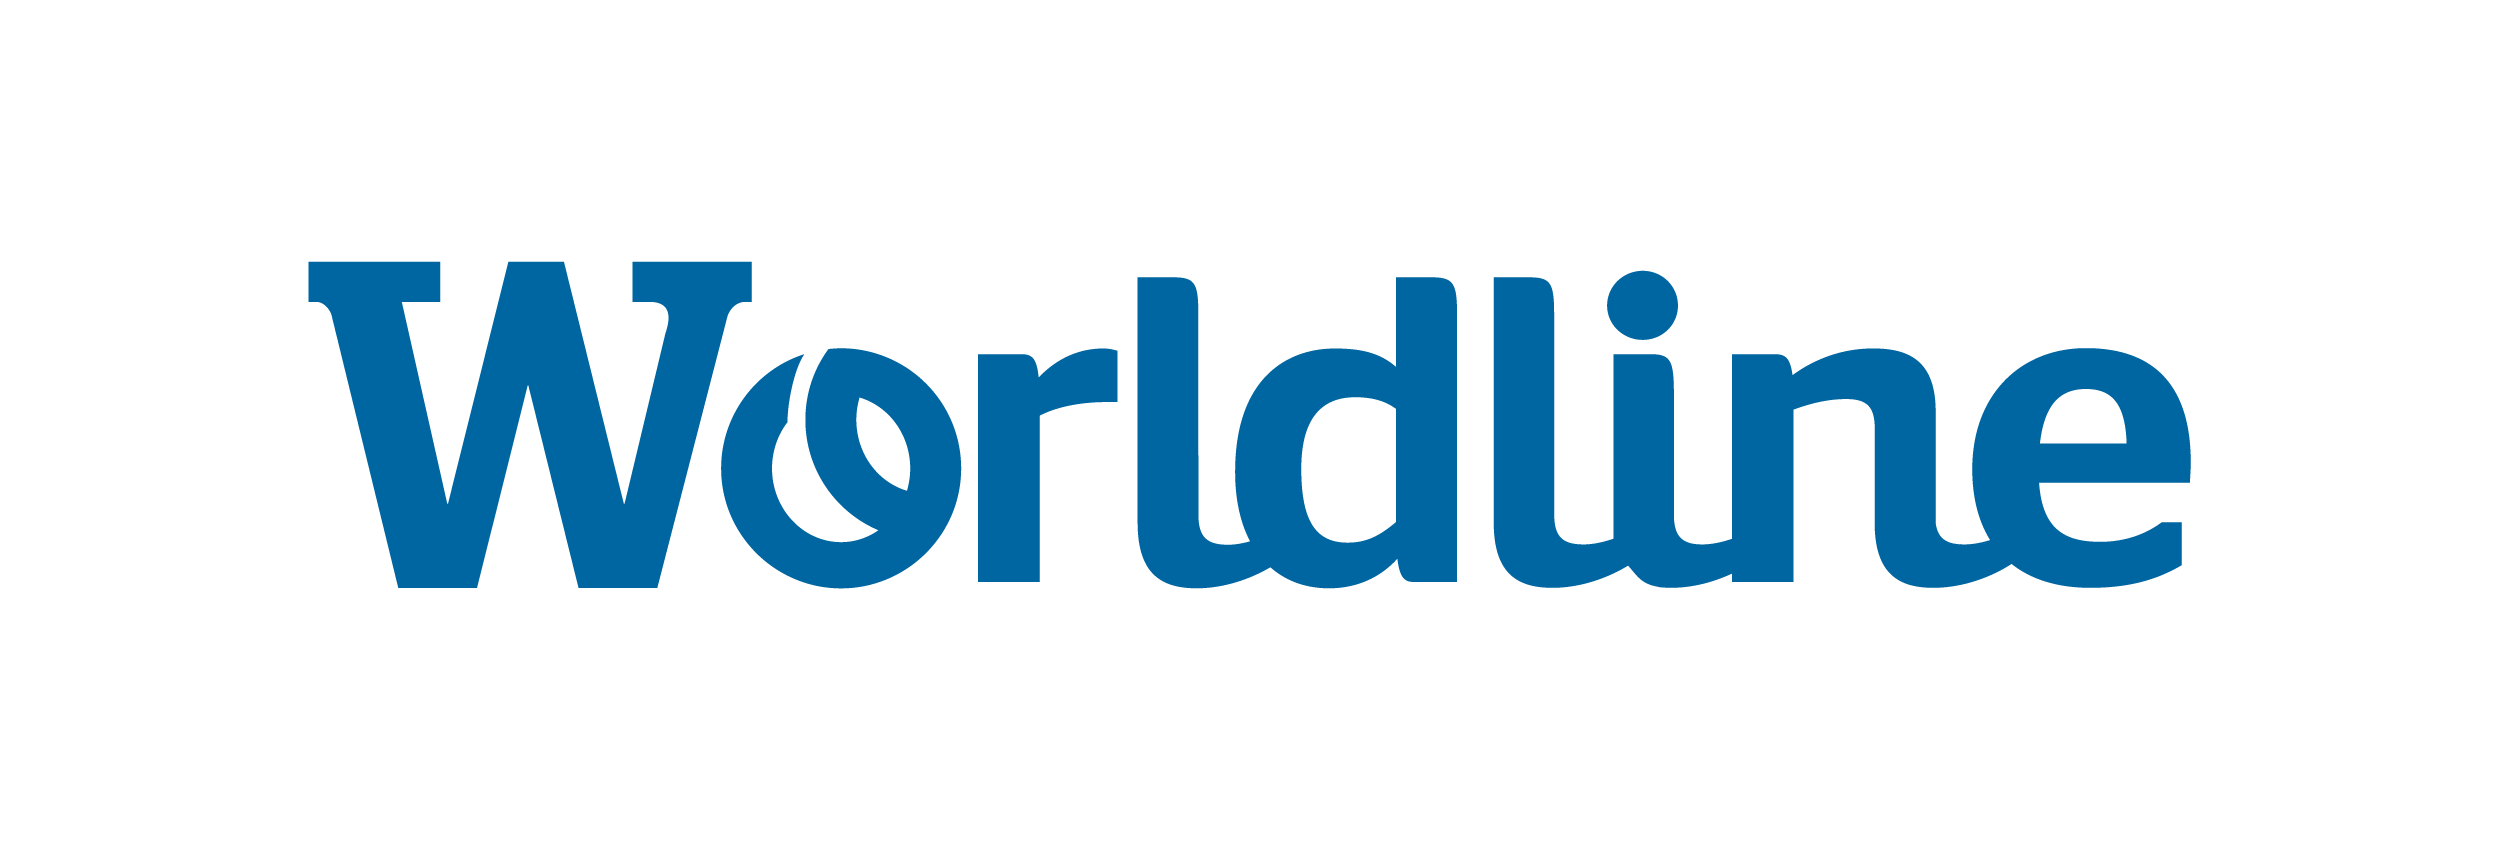 Subway chooses Worldline to provide payment solutions across Europe